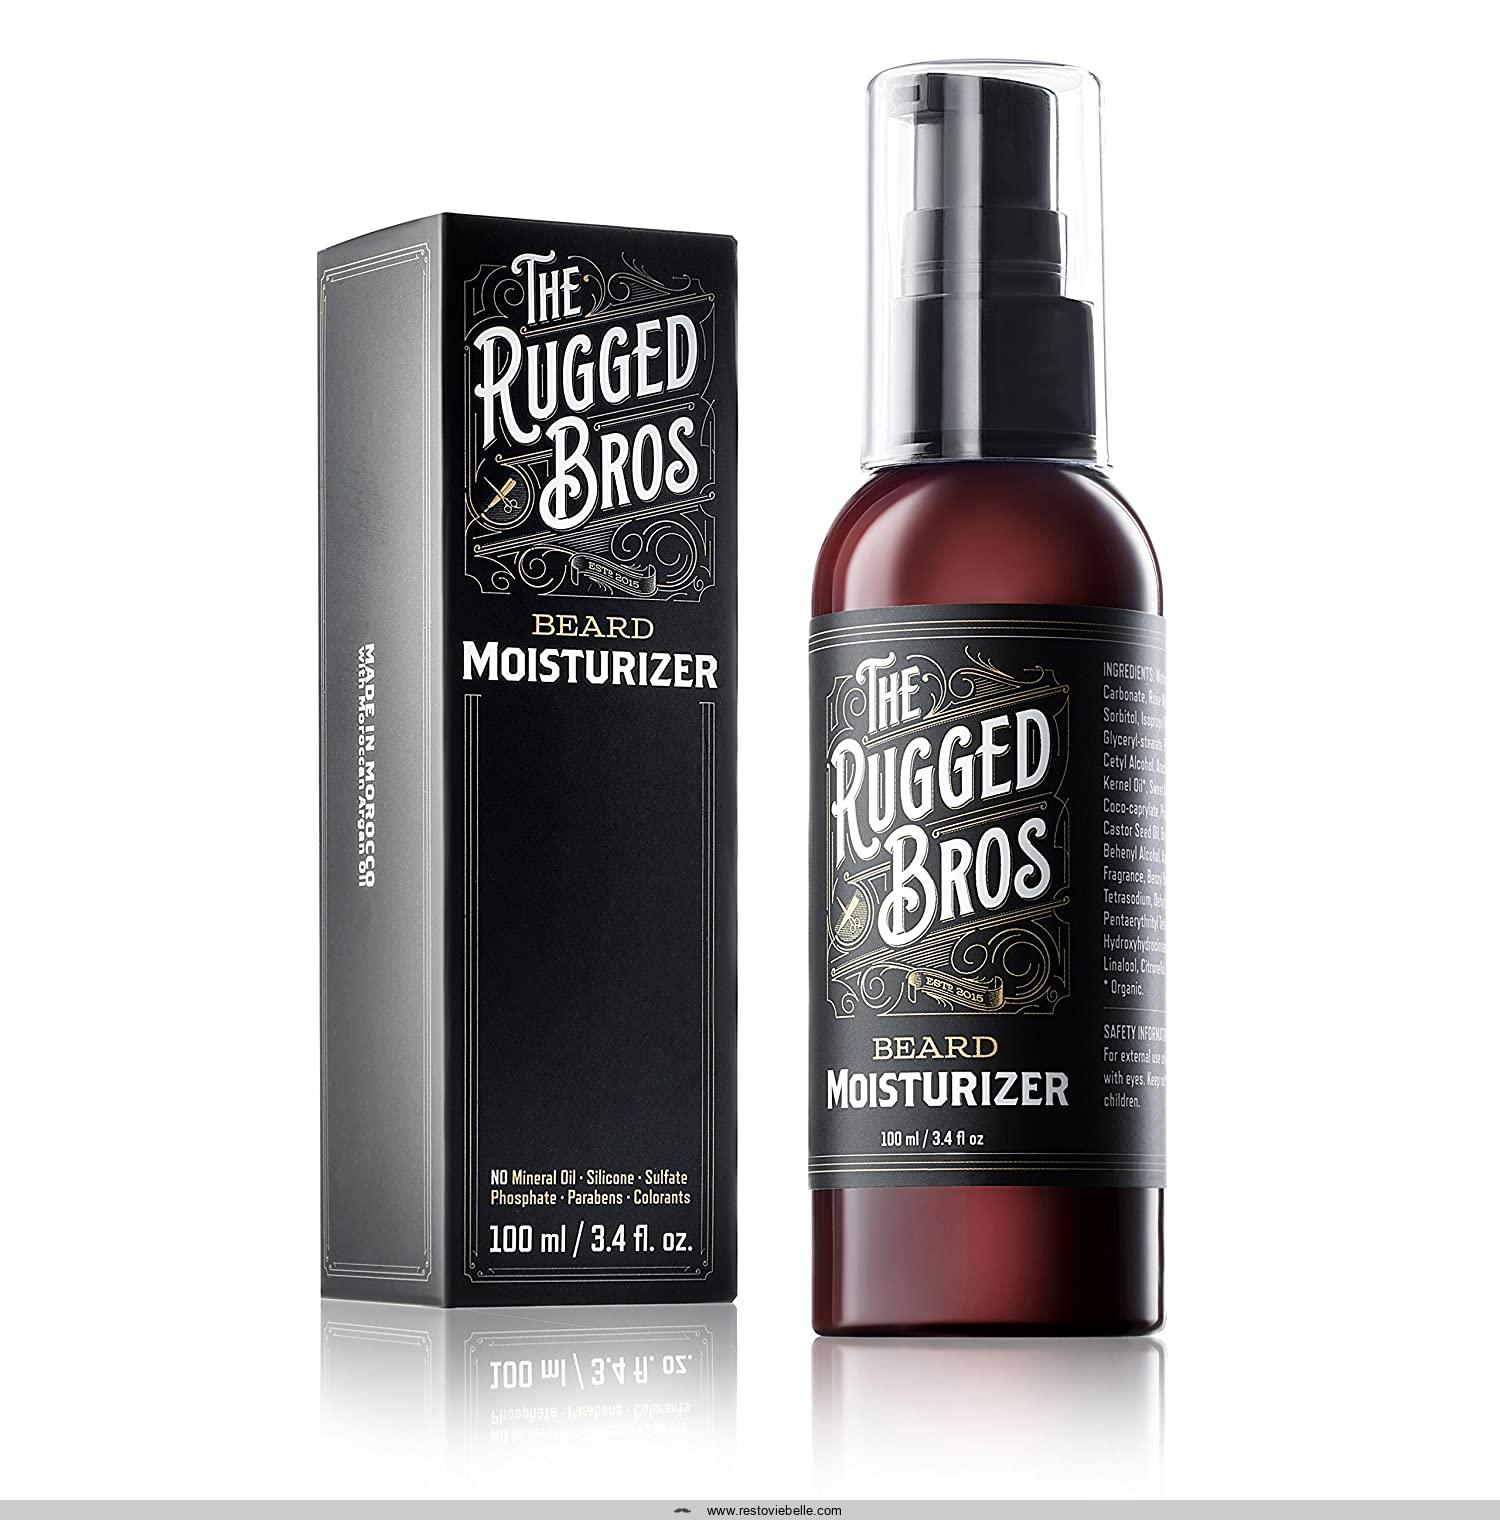 Beard Moisturizer for Men by The Rugged Bros